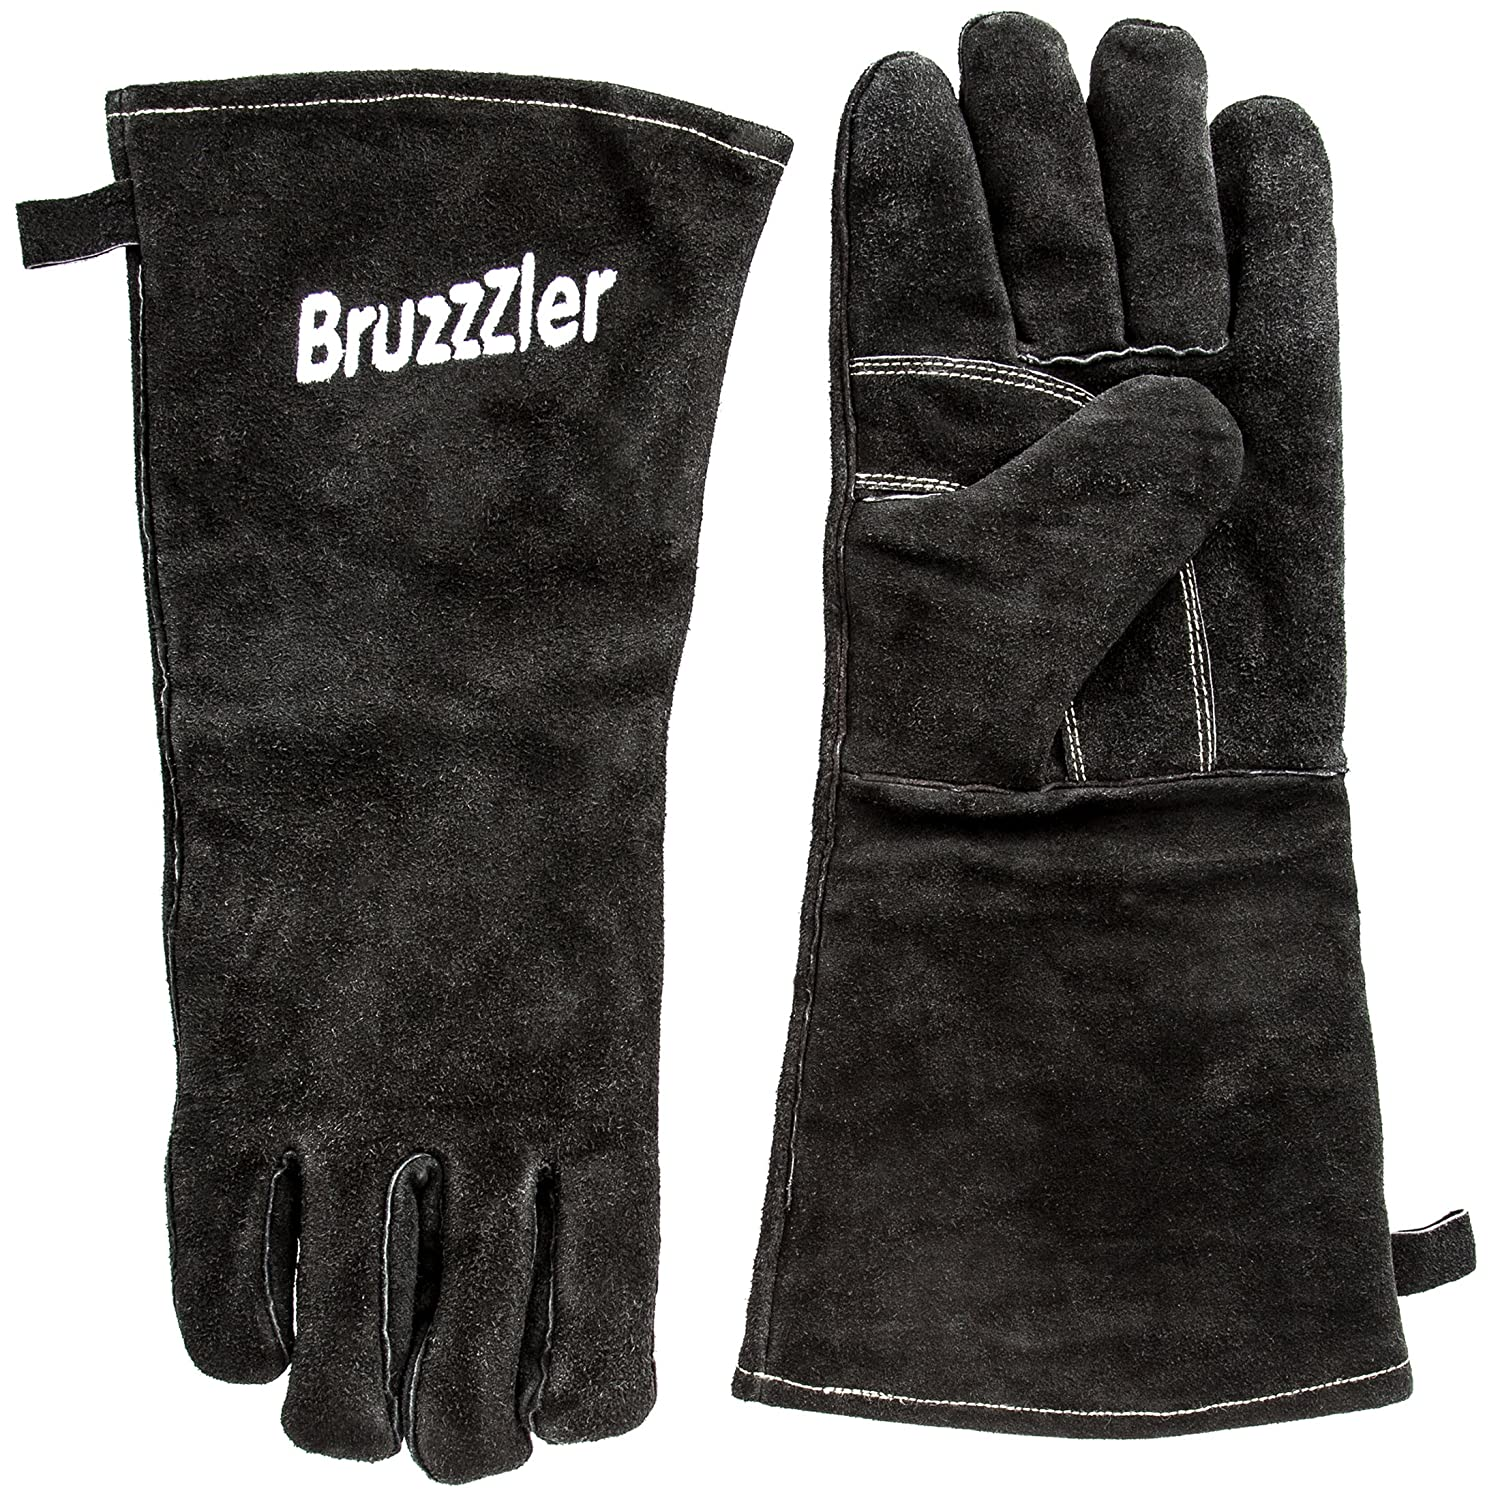 Bruzzzler grill gloves fireproof/grill leather gloves, long, in universal size, heat-resistant glove for BBQ, fireplace, oven, gas grill and charcoal grill workmanship 200100001081